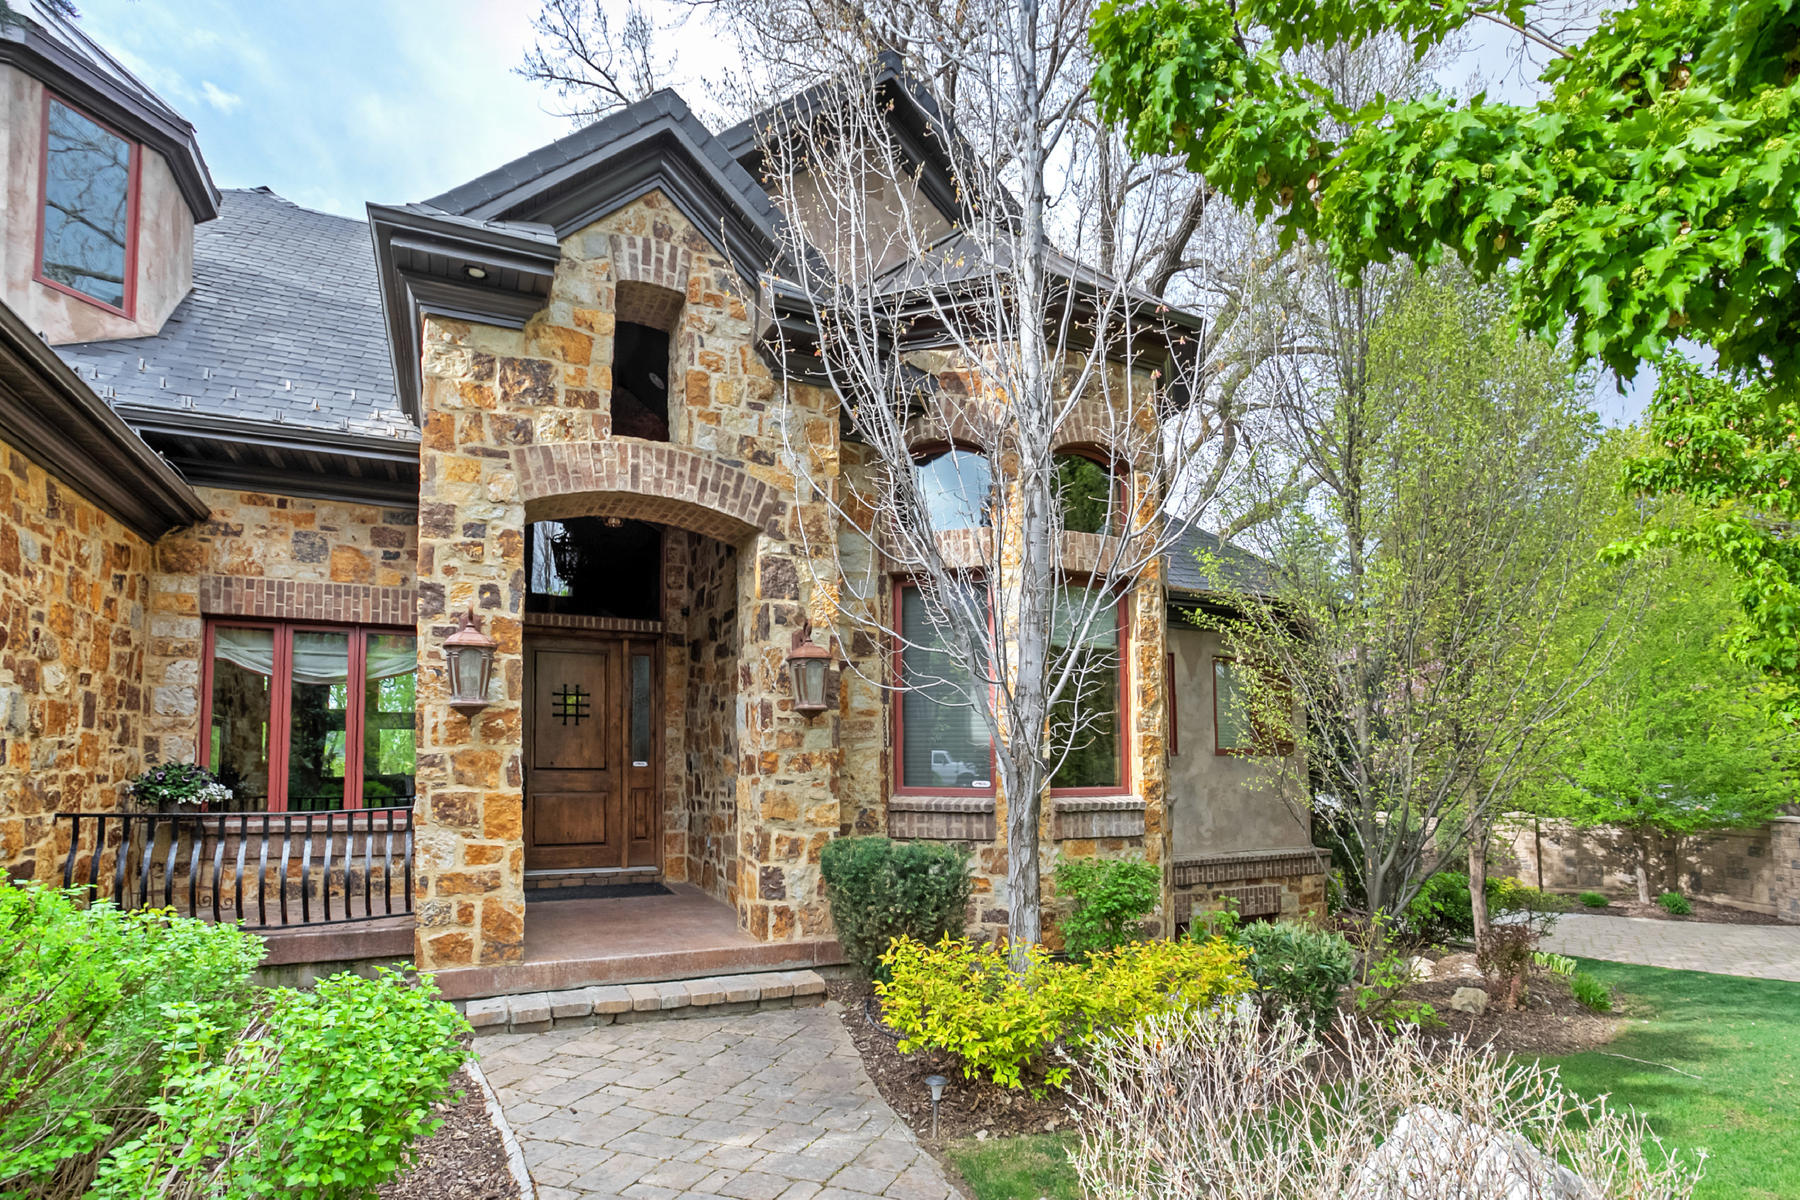 Single Family Home for Sale at Incredible, Secluded Two-Story in Millcreek 2472 Evergreen Ave Salt Lake City, Utah, 84109 United States